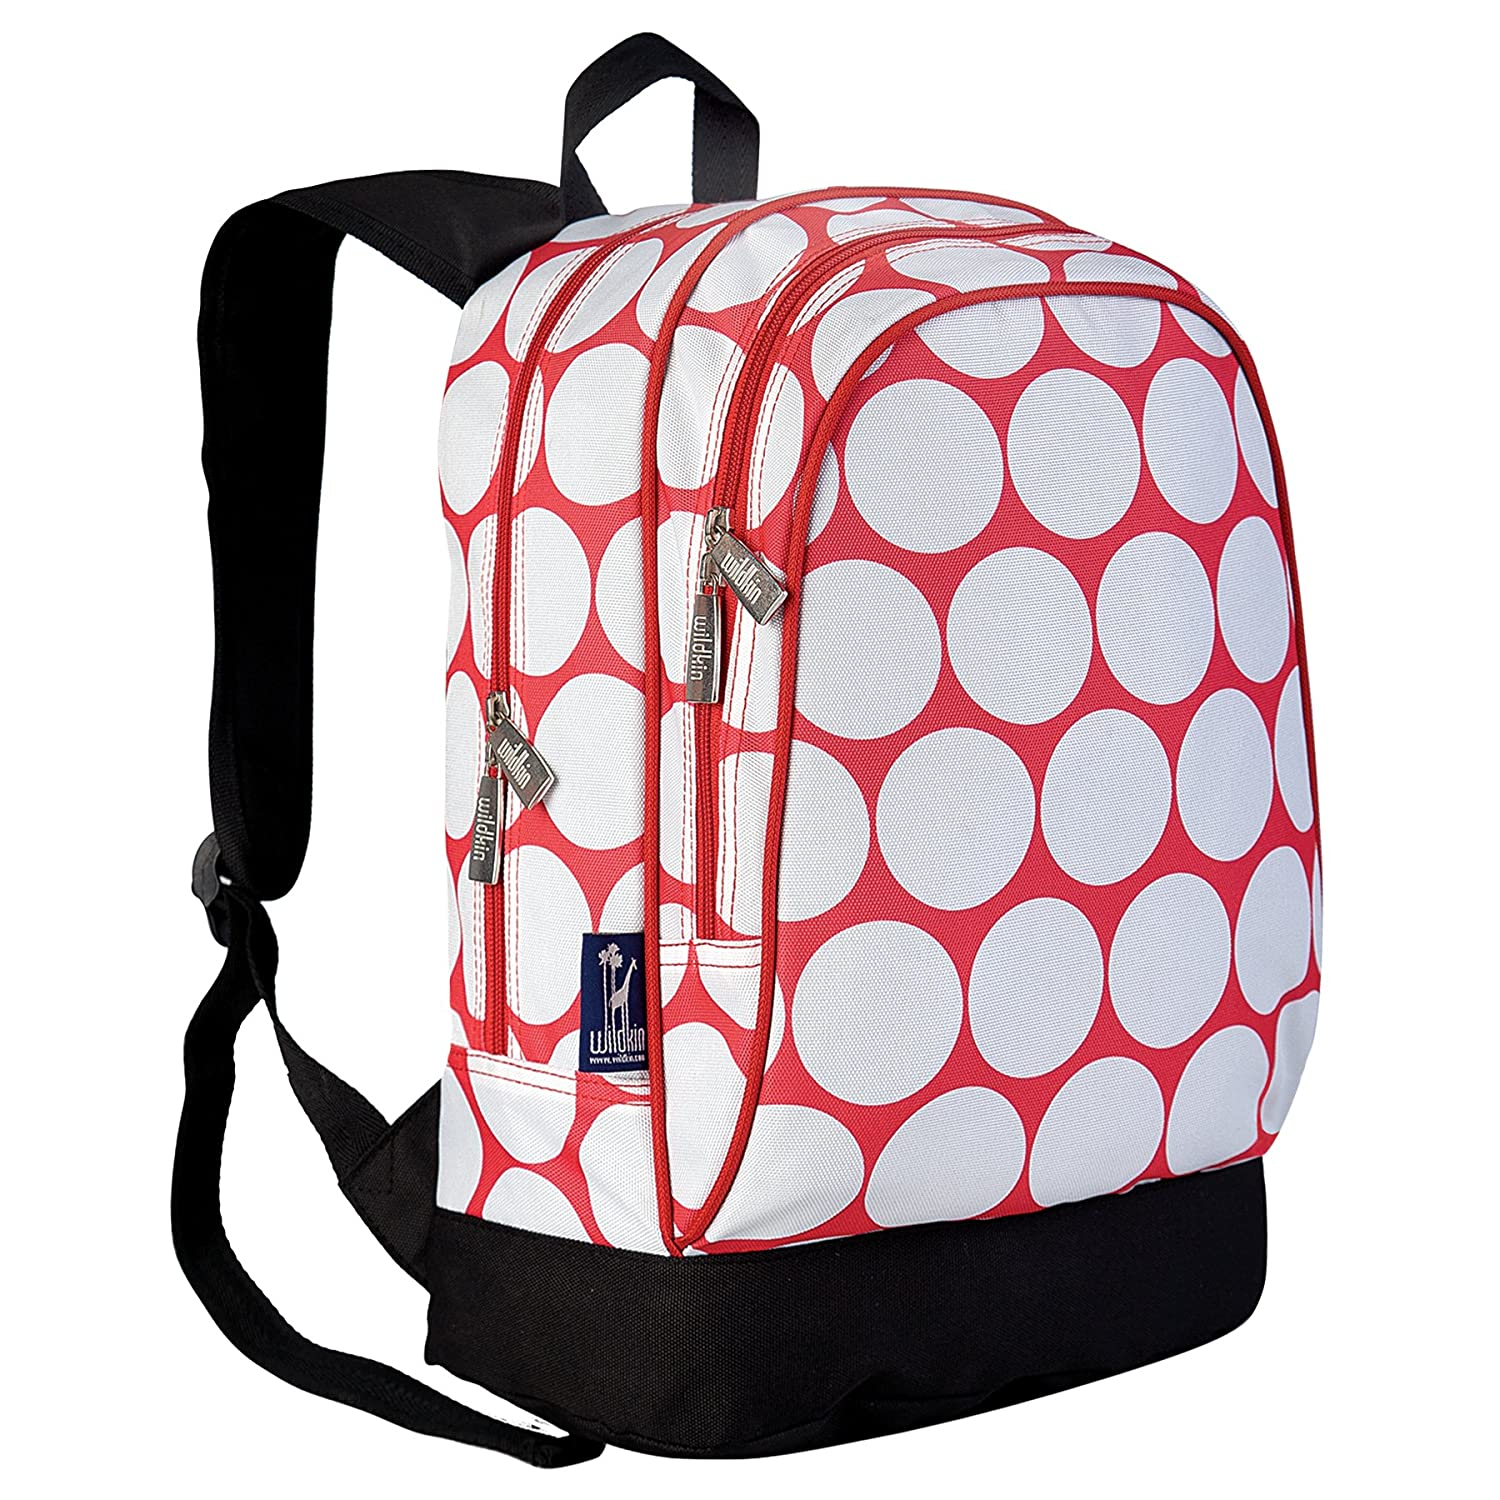 69dd7167c208 Wildkin Red and White Big Dot Sidekick Backpack  Amazon.in  Bags ...